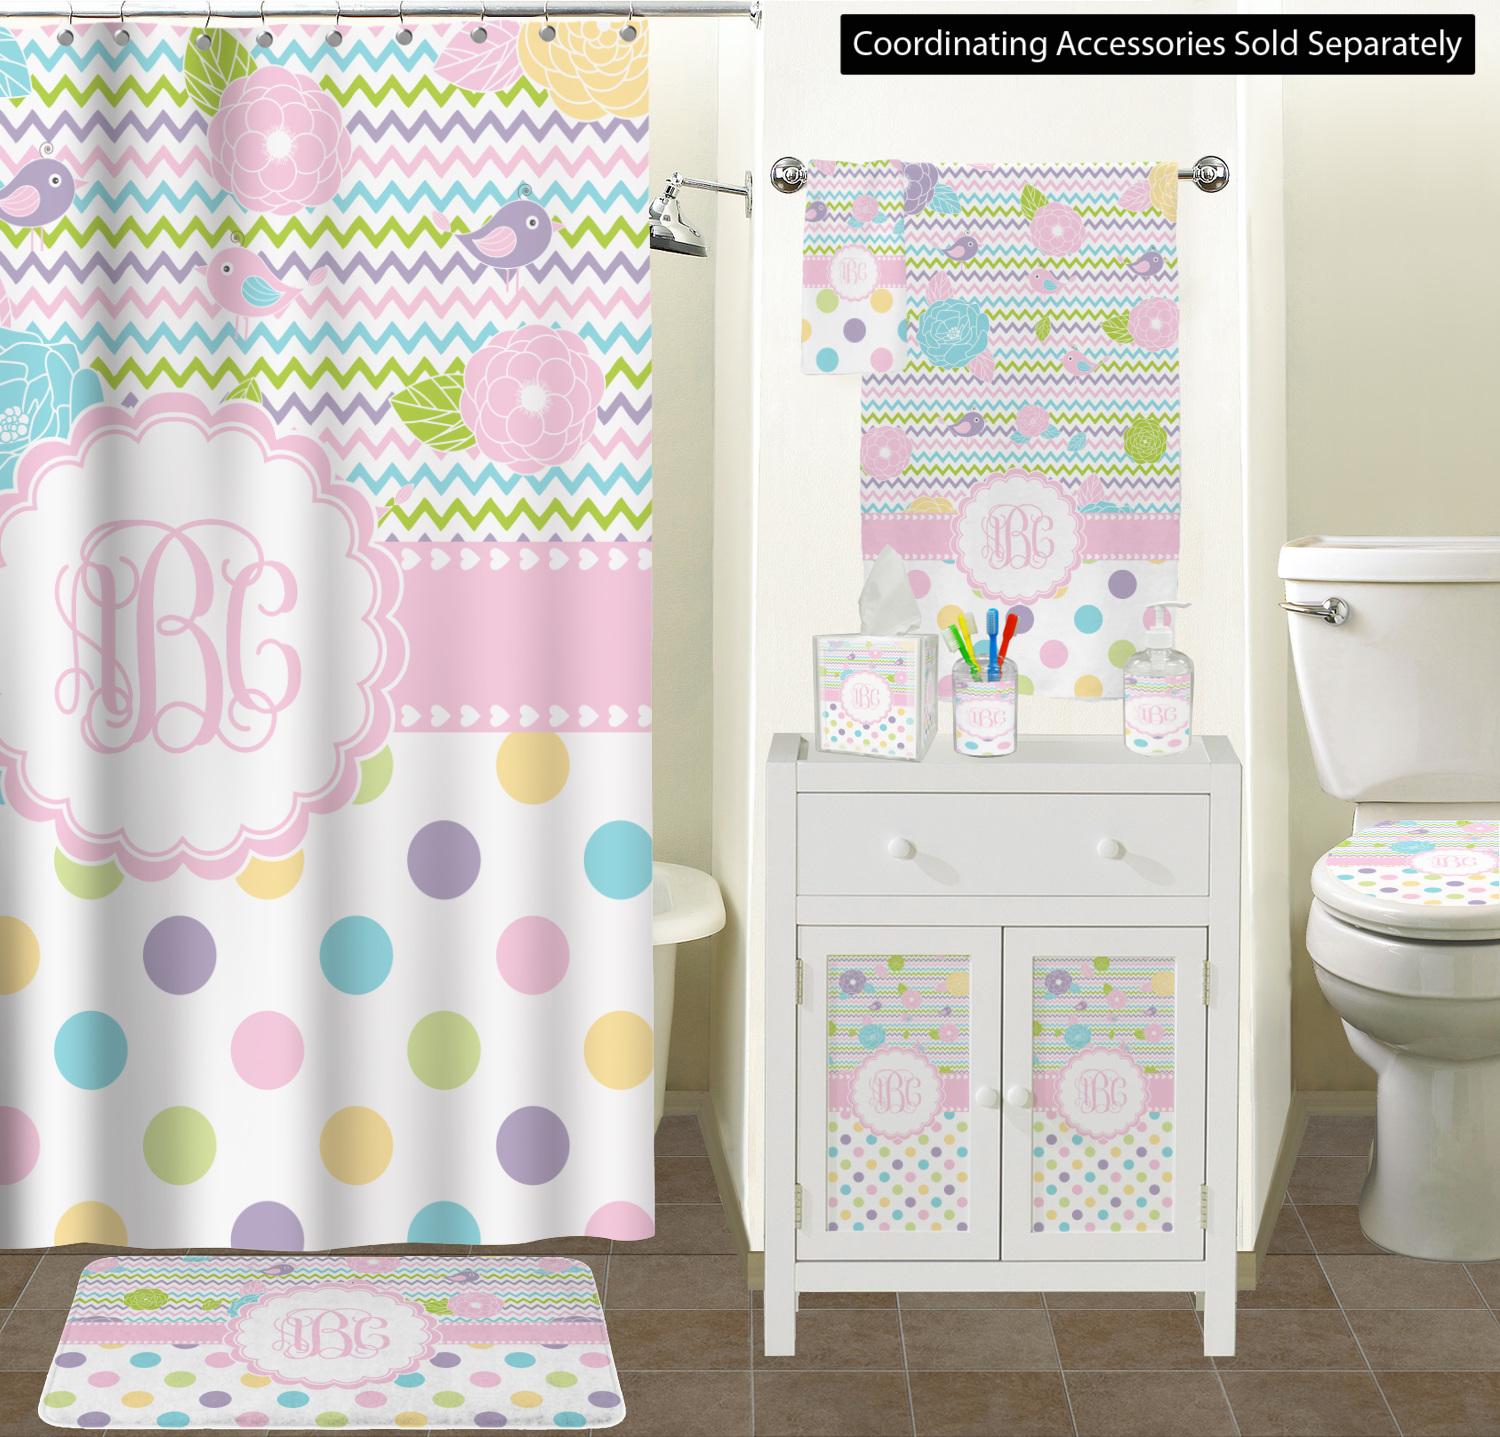 Girly Girl Bathroom Accessories Set (Personalized) - YouCustomizeIt